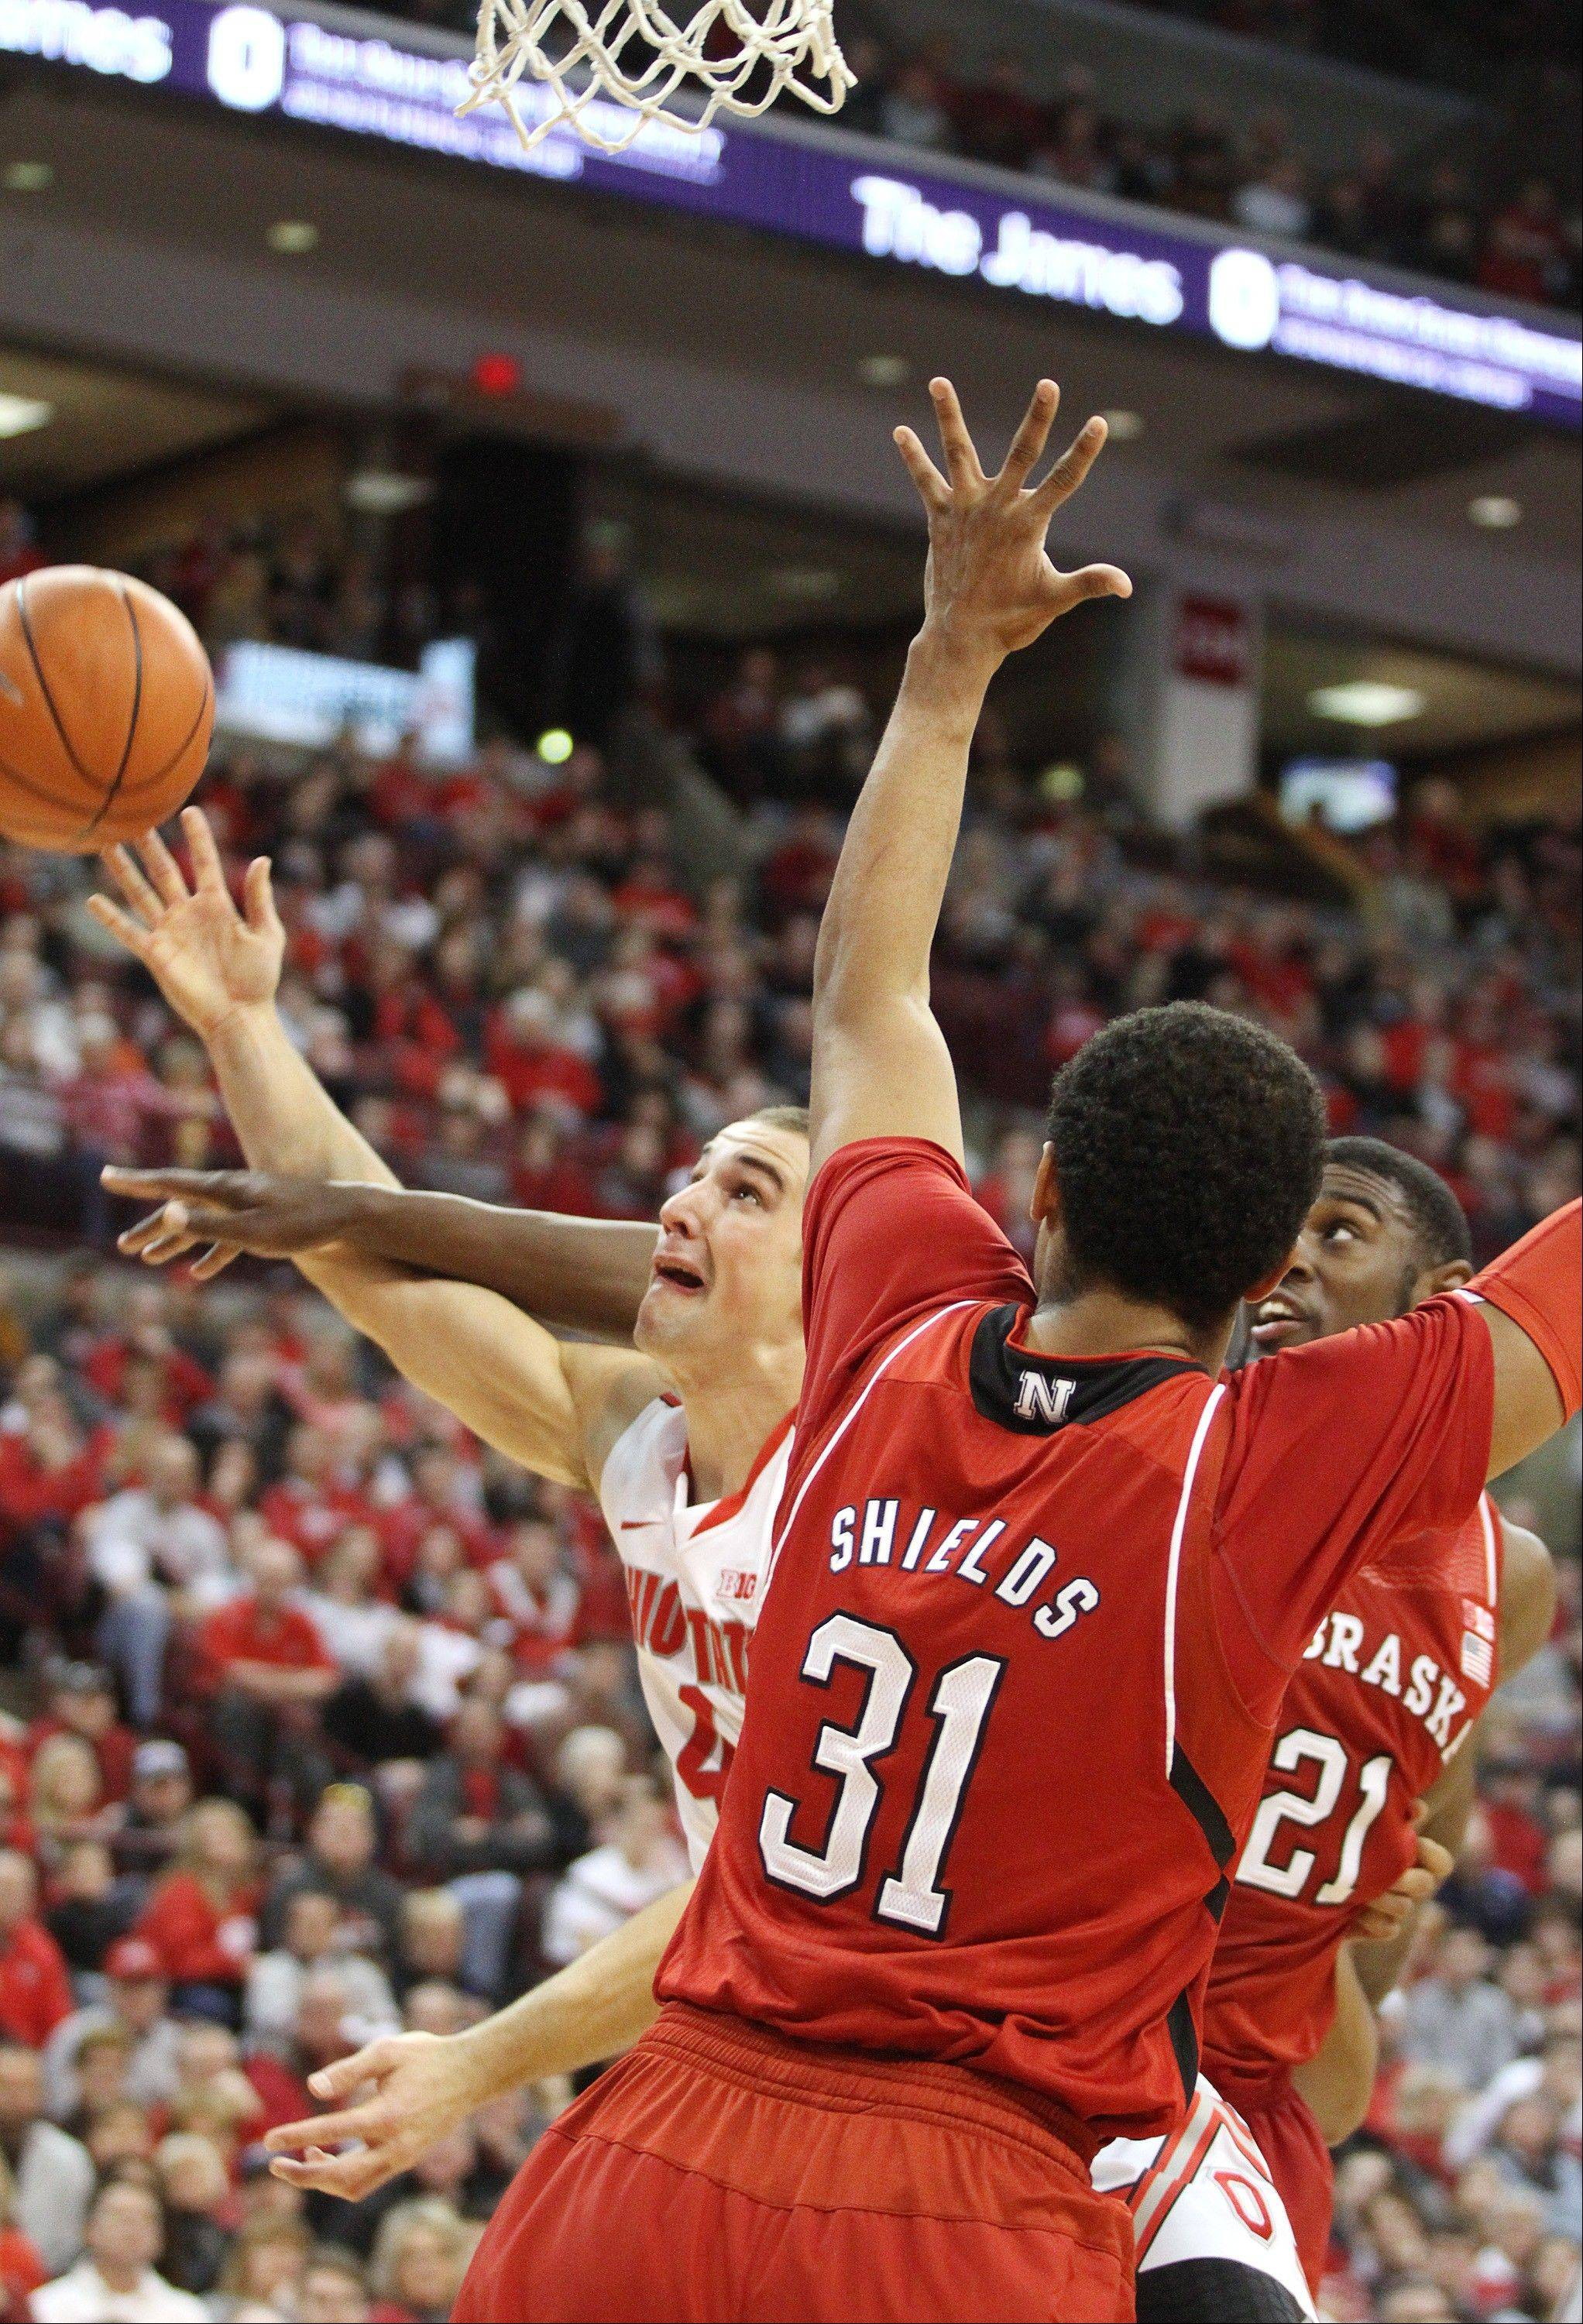 Ohio State's Aaron Craft, left, is fouled by Nebraska's Leslee Smith (21) during the first half of an NCAA college basketball game Saturday, Jan. 4, 2014, in Columbus, Ohio. Nebraska's Shavon Shields (31) defends on the play.